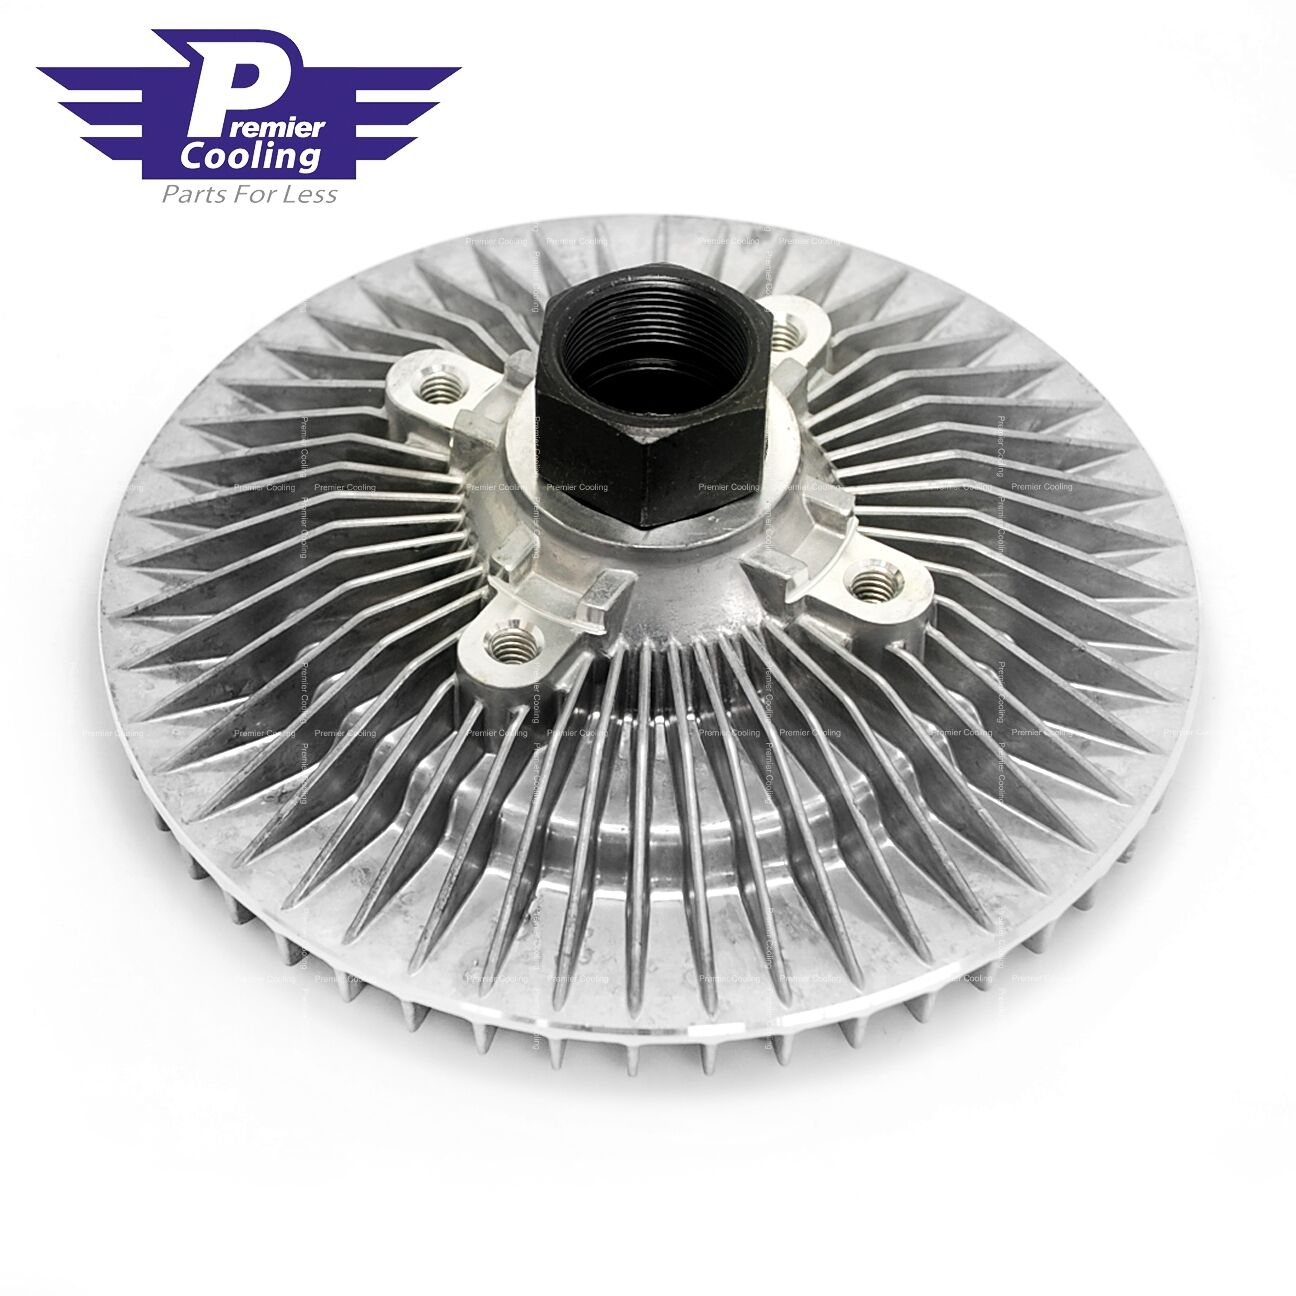 Radiator Fan Clutch For Dodge Dakota Durango Ram 52028799ab 2706 Jeep Tj Derale Threadin Thermostat Control With Dual Threads 1 Of 2only 5 Available